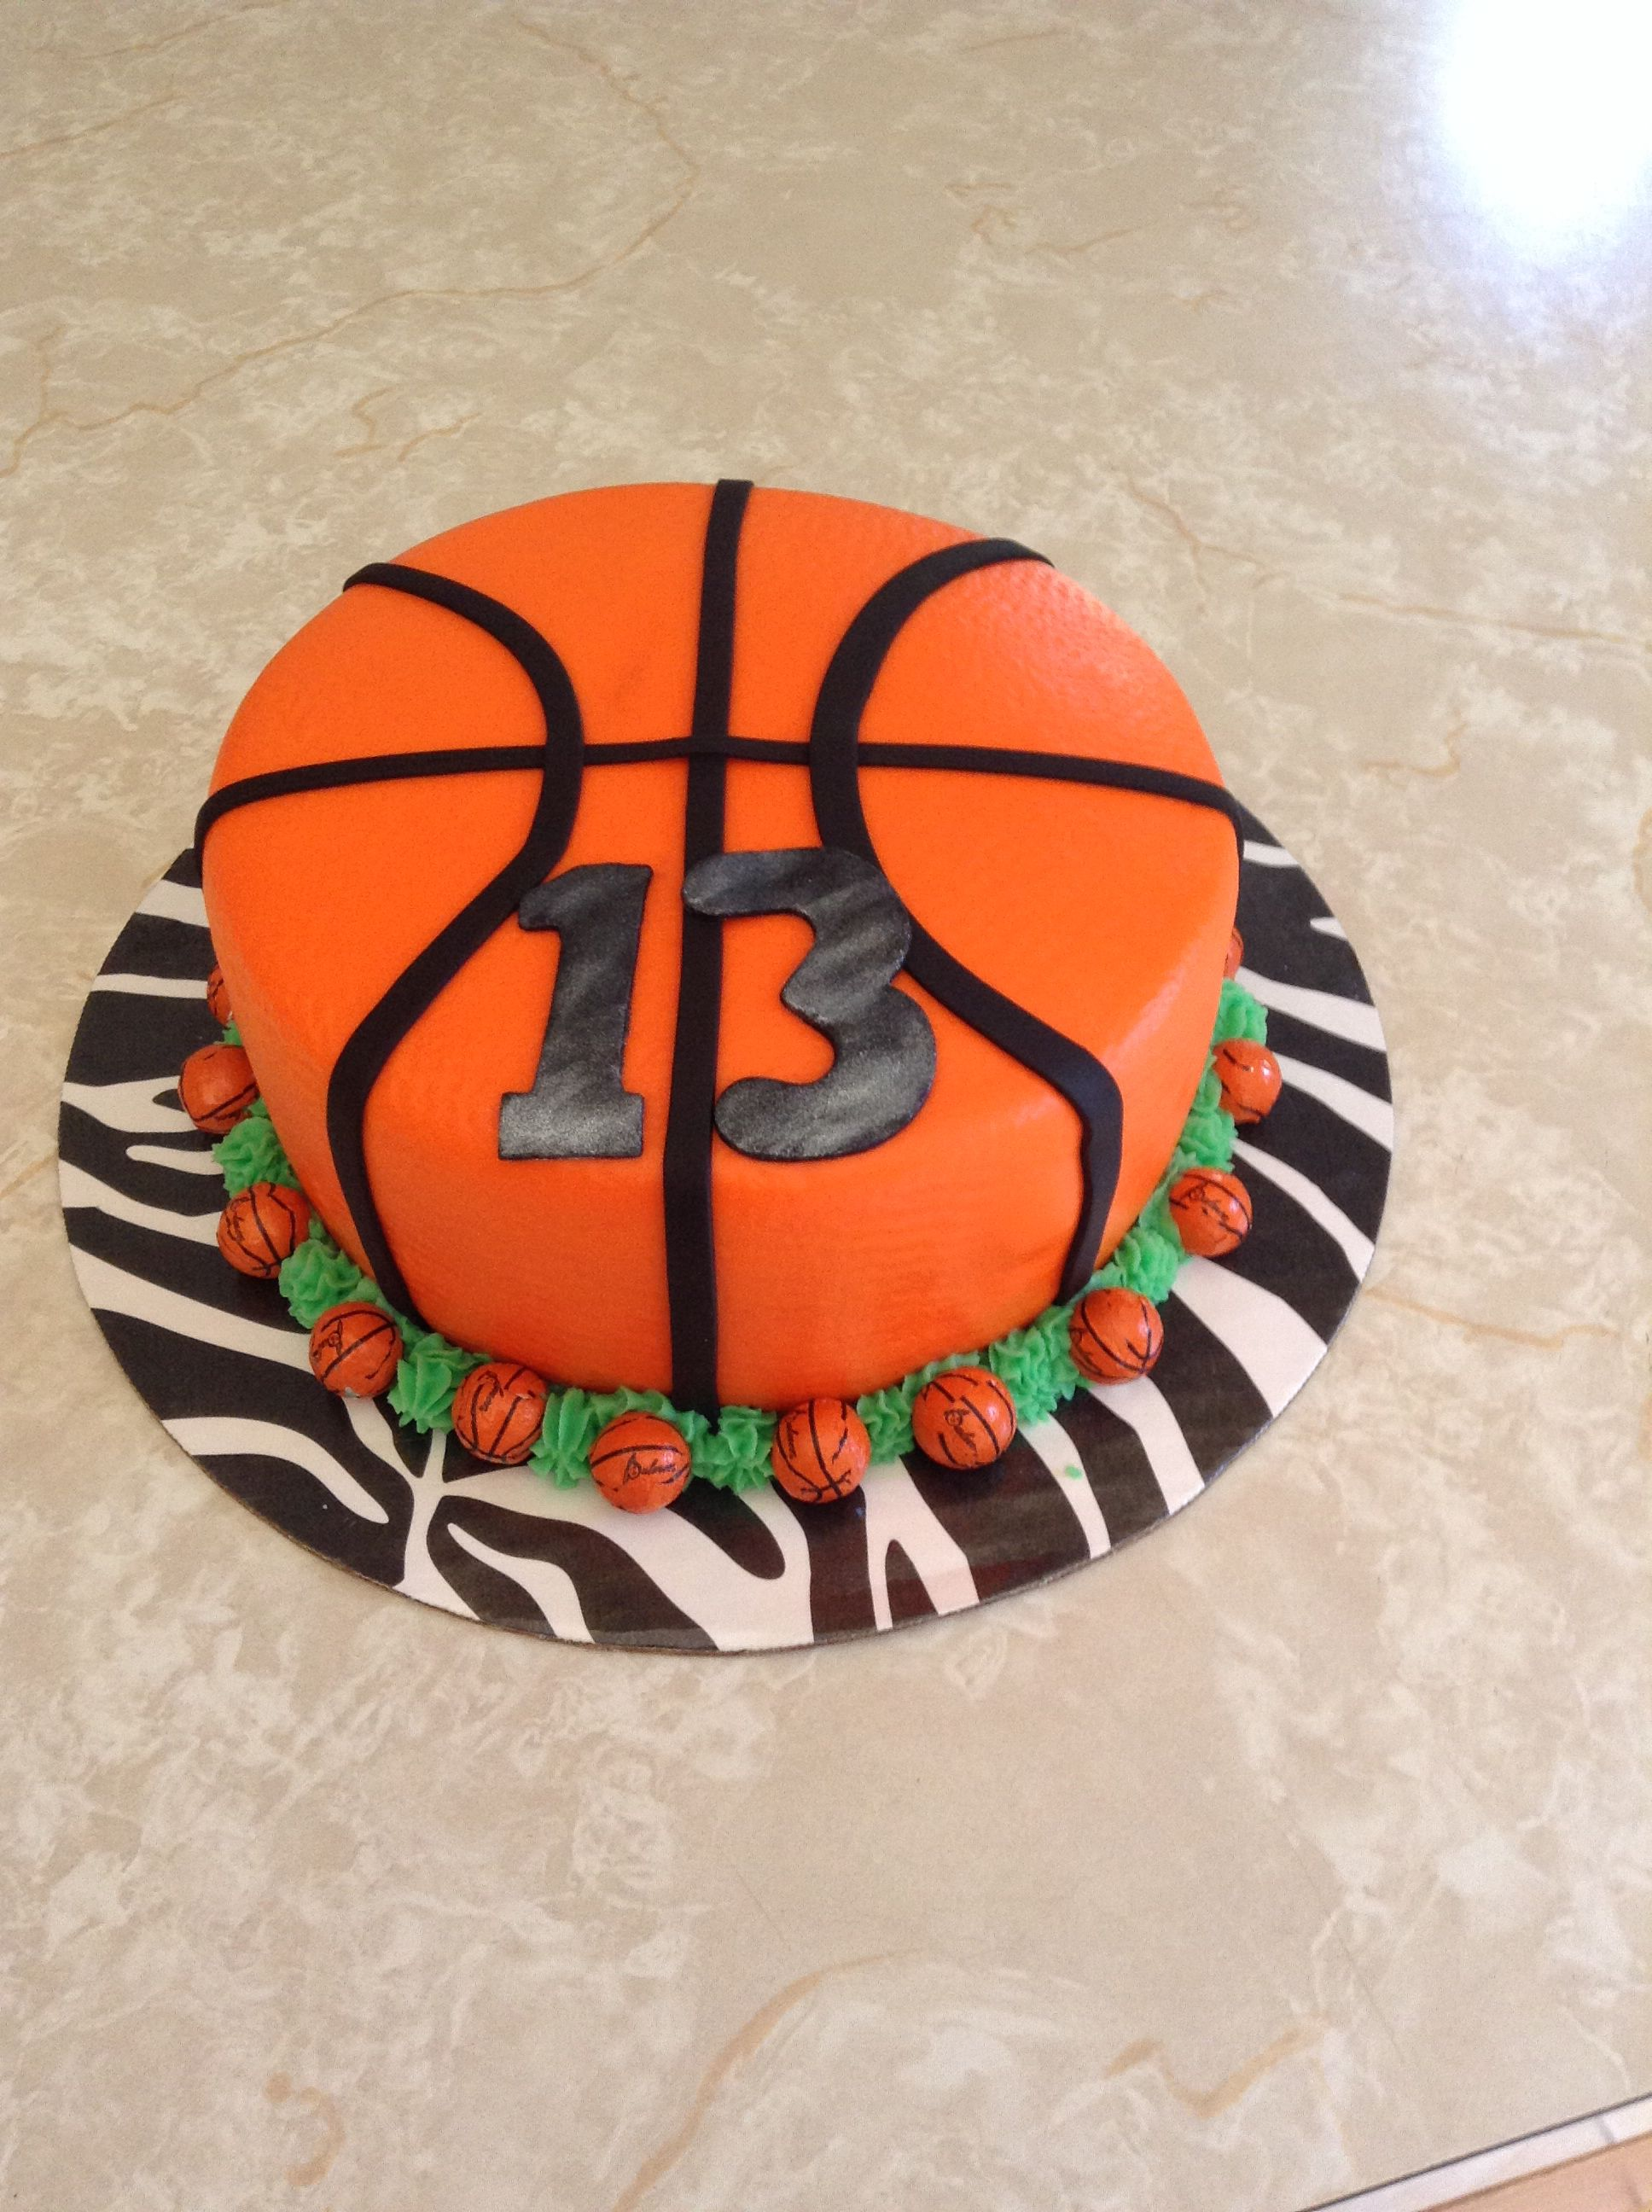 Astounding Basketball Cake For A Girl Basketball Birthday Cake Girl Cakes Funny Birthday Cards Online Unhofree Goldxyz